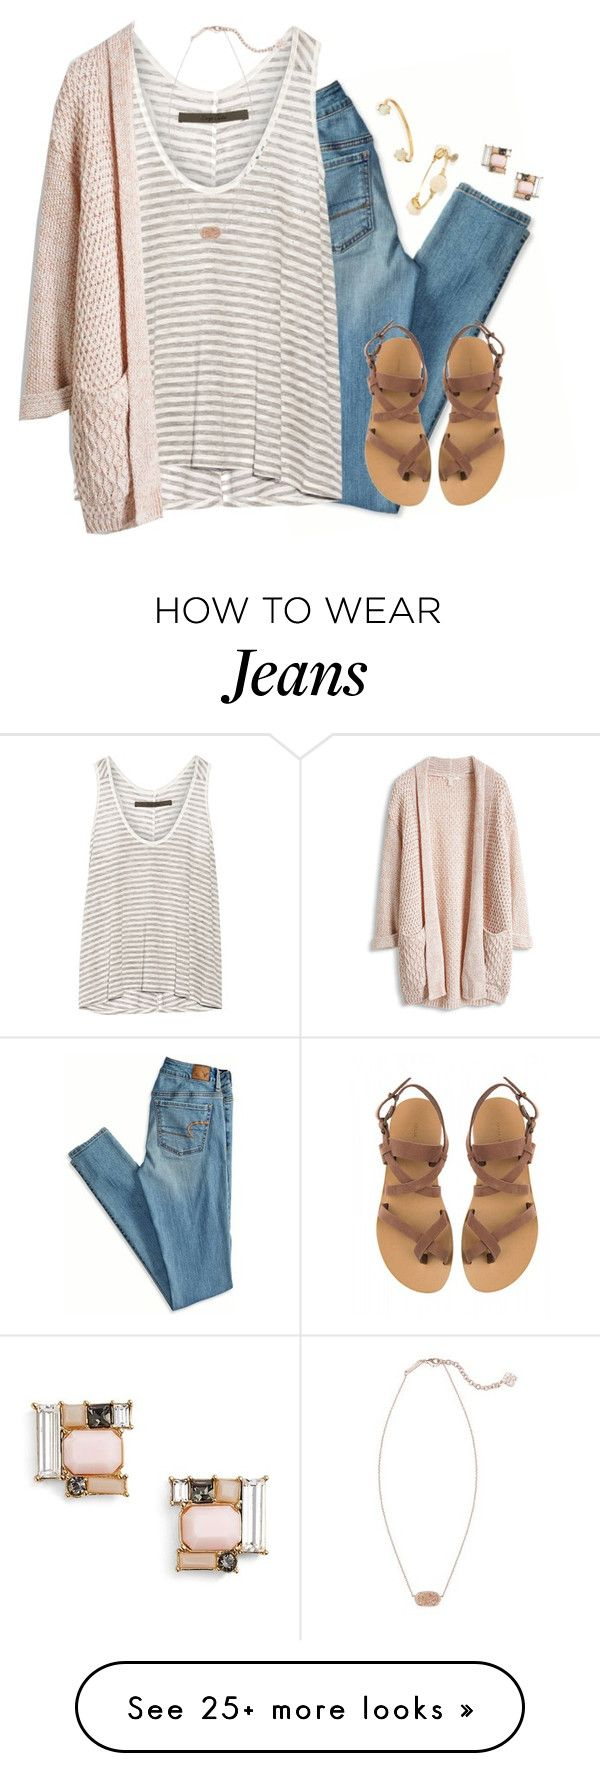 by kaley-ii on Polyvore featuring American Eagle Outfitters, Enza Costa, Kendra Scott, Valia Gabriel, Bourbon and Boweties, Lizzie Fortunato and Kate Spade